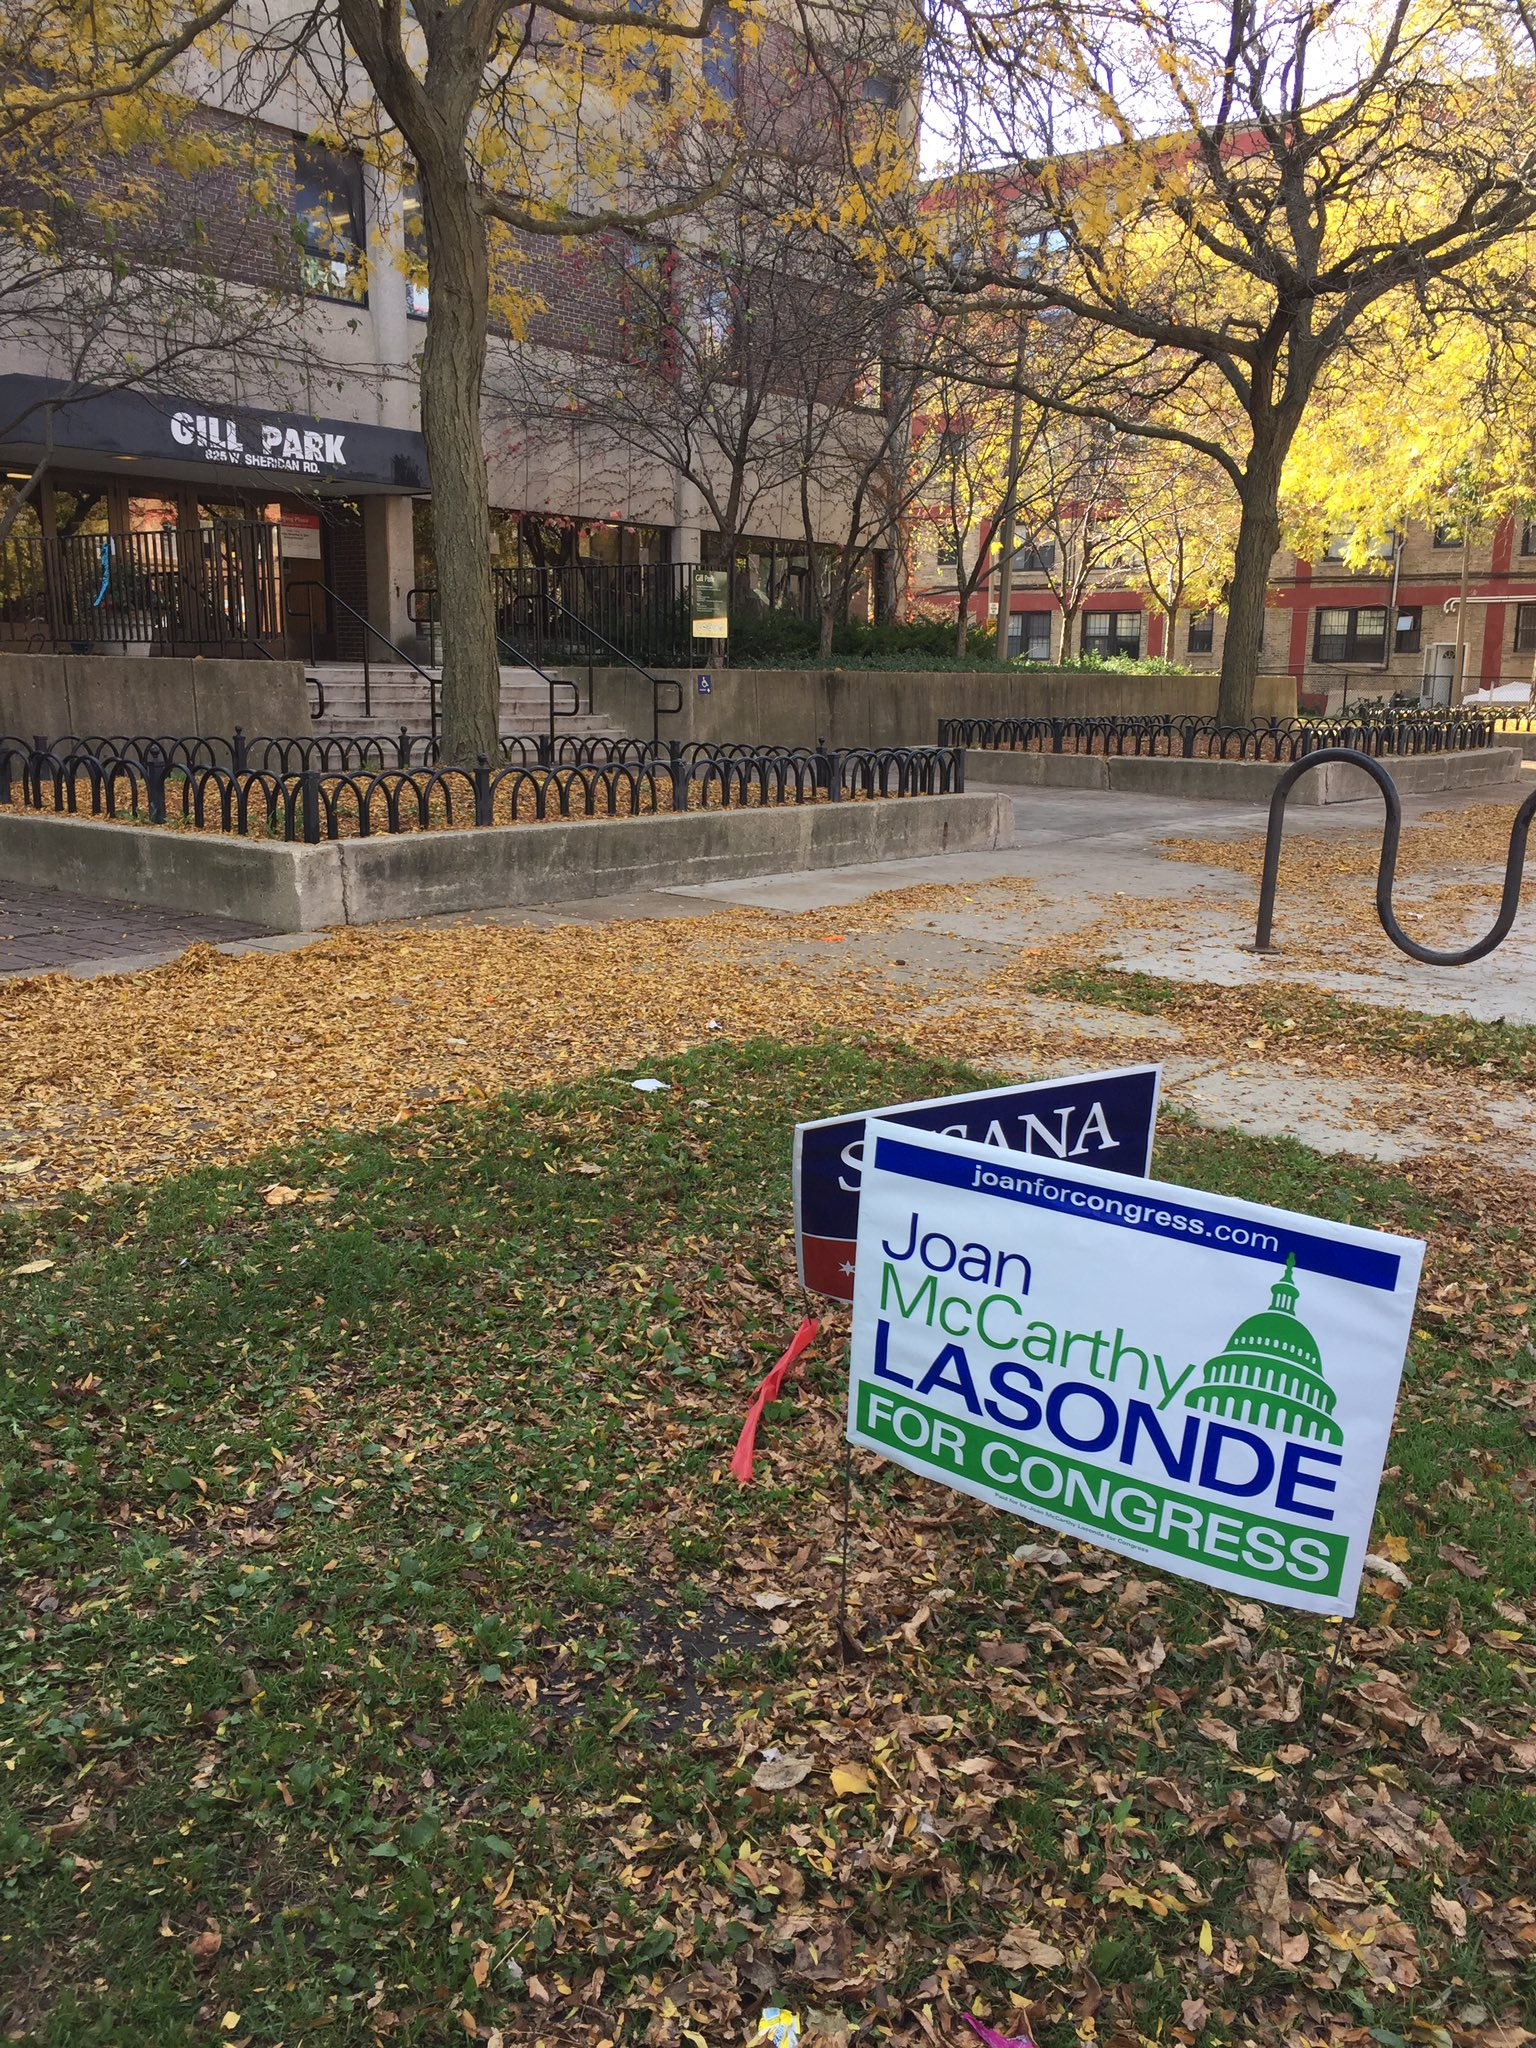 These campaign signs appear a little too close to the Gill Park polling place in Lakeview, IL. #electionland #commuic @commuic https://t.co/gefubVvPtC